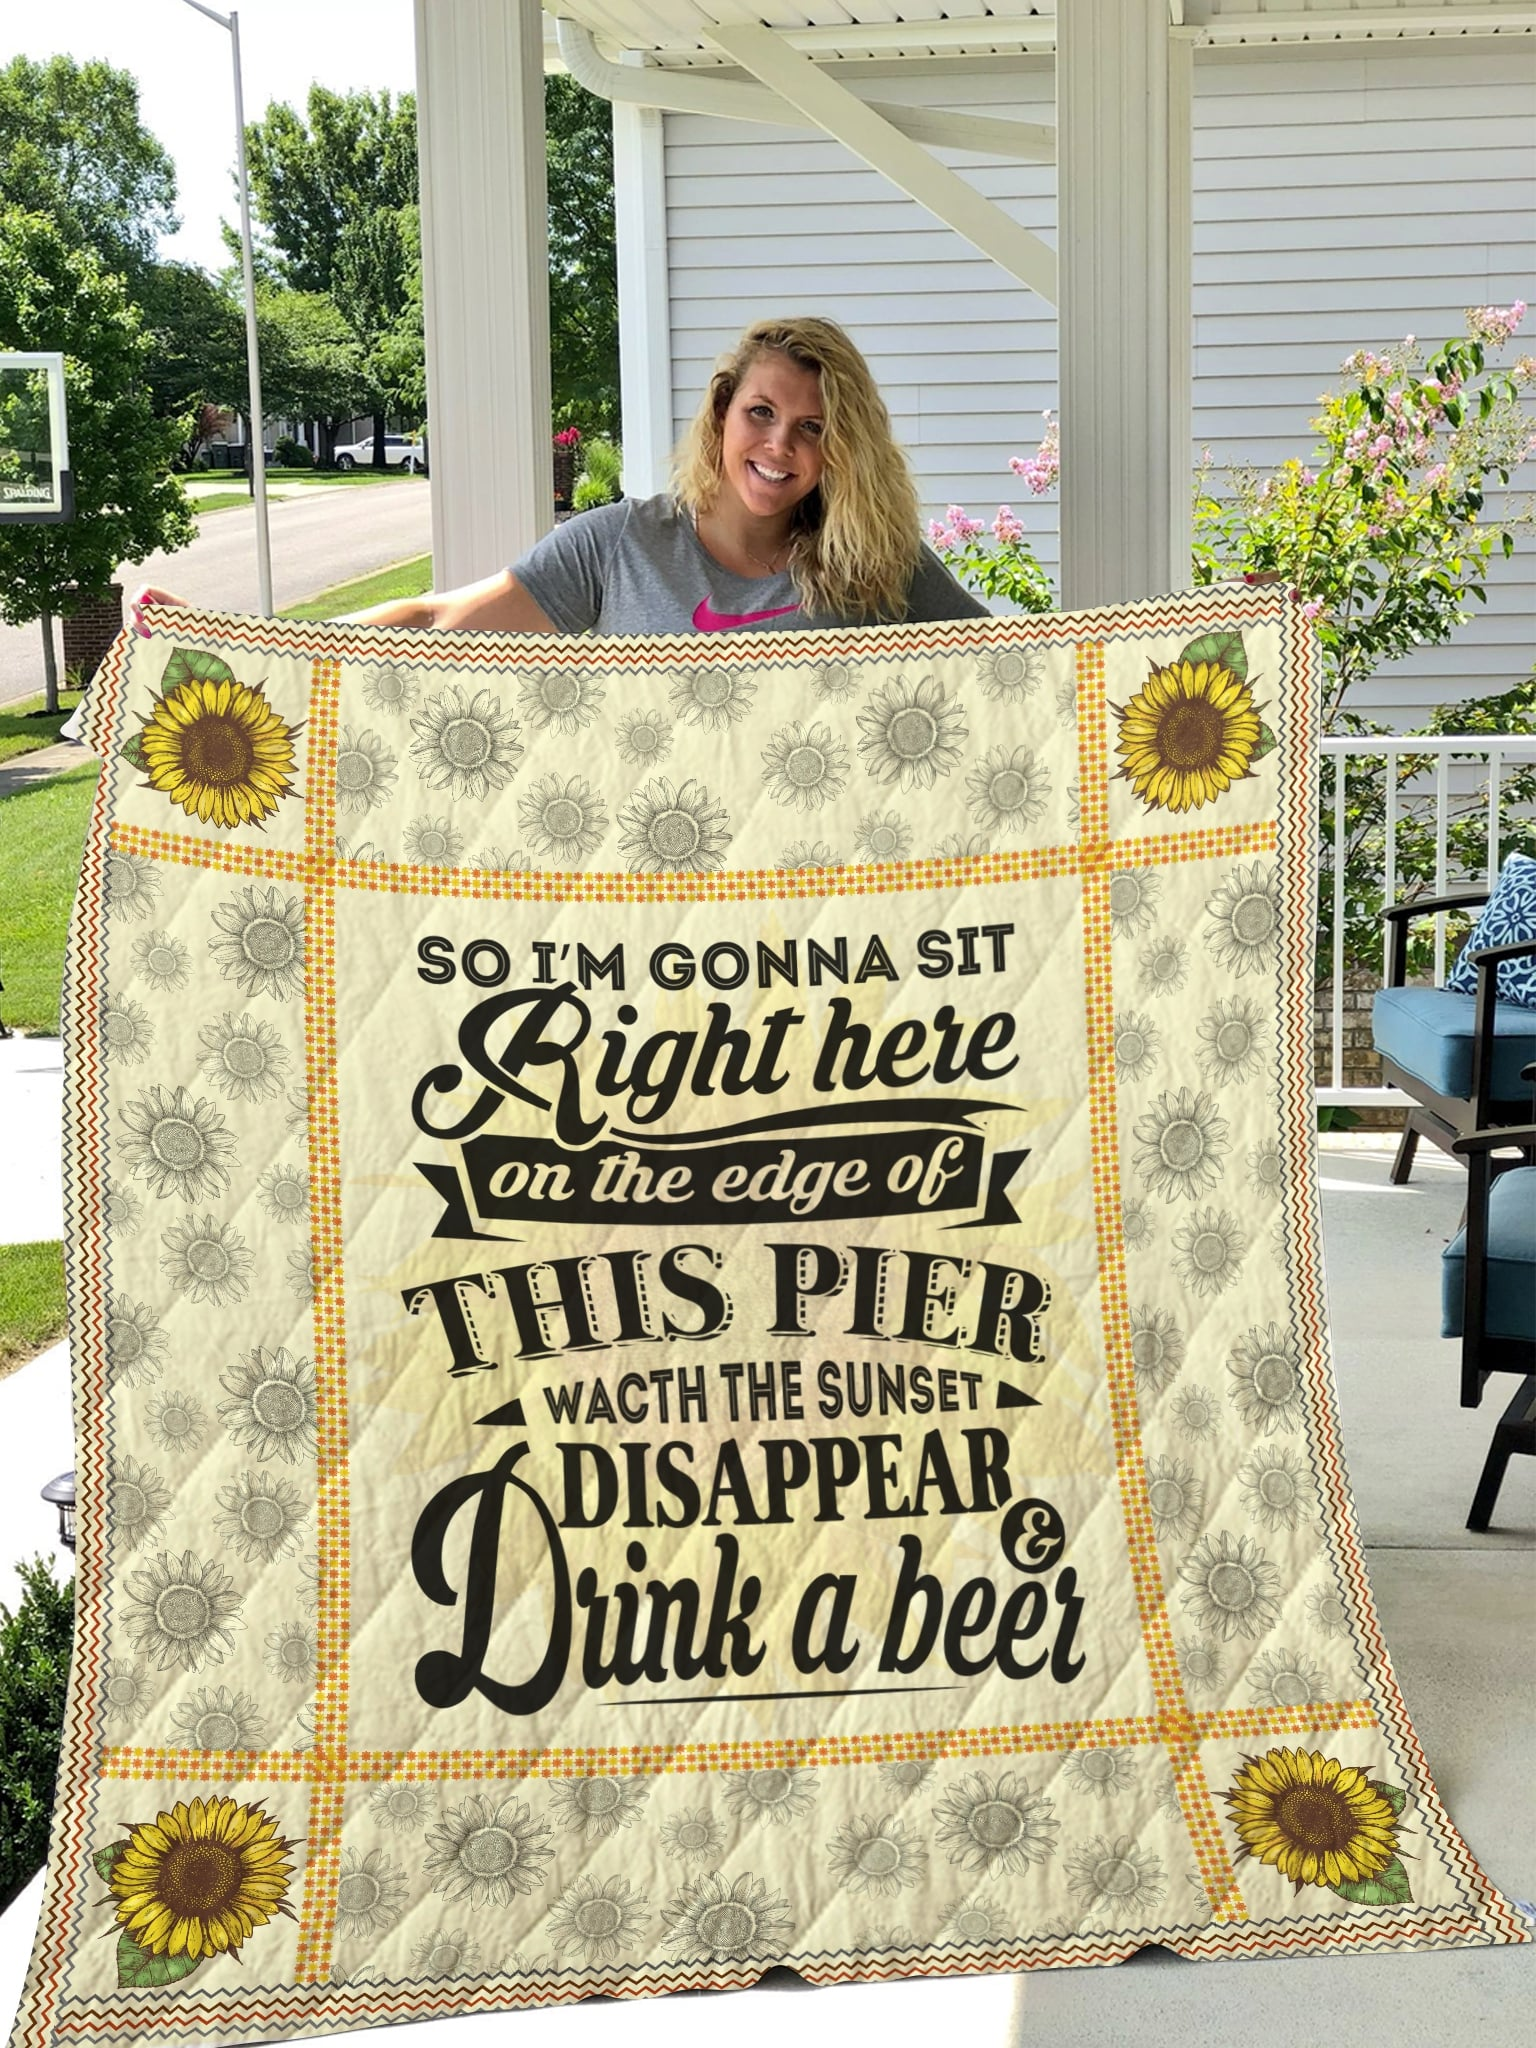 Luke bryan so i'm gonna sit right here and drink a beer quilt 2